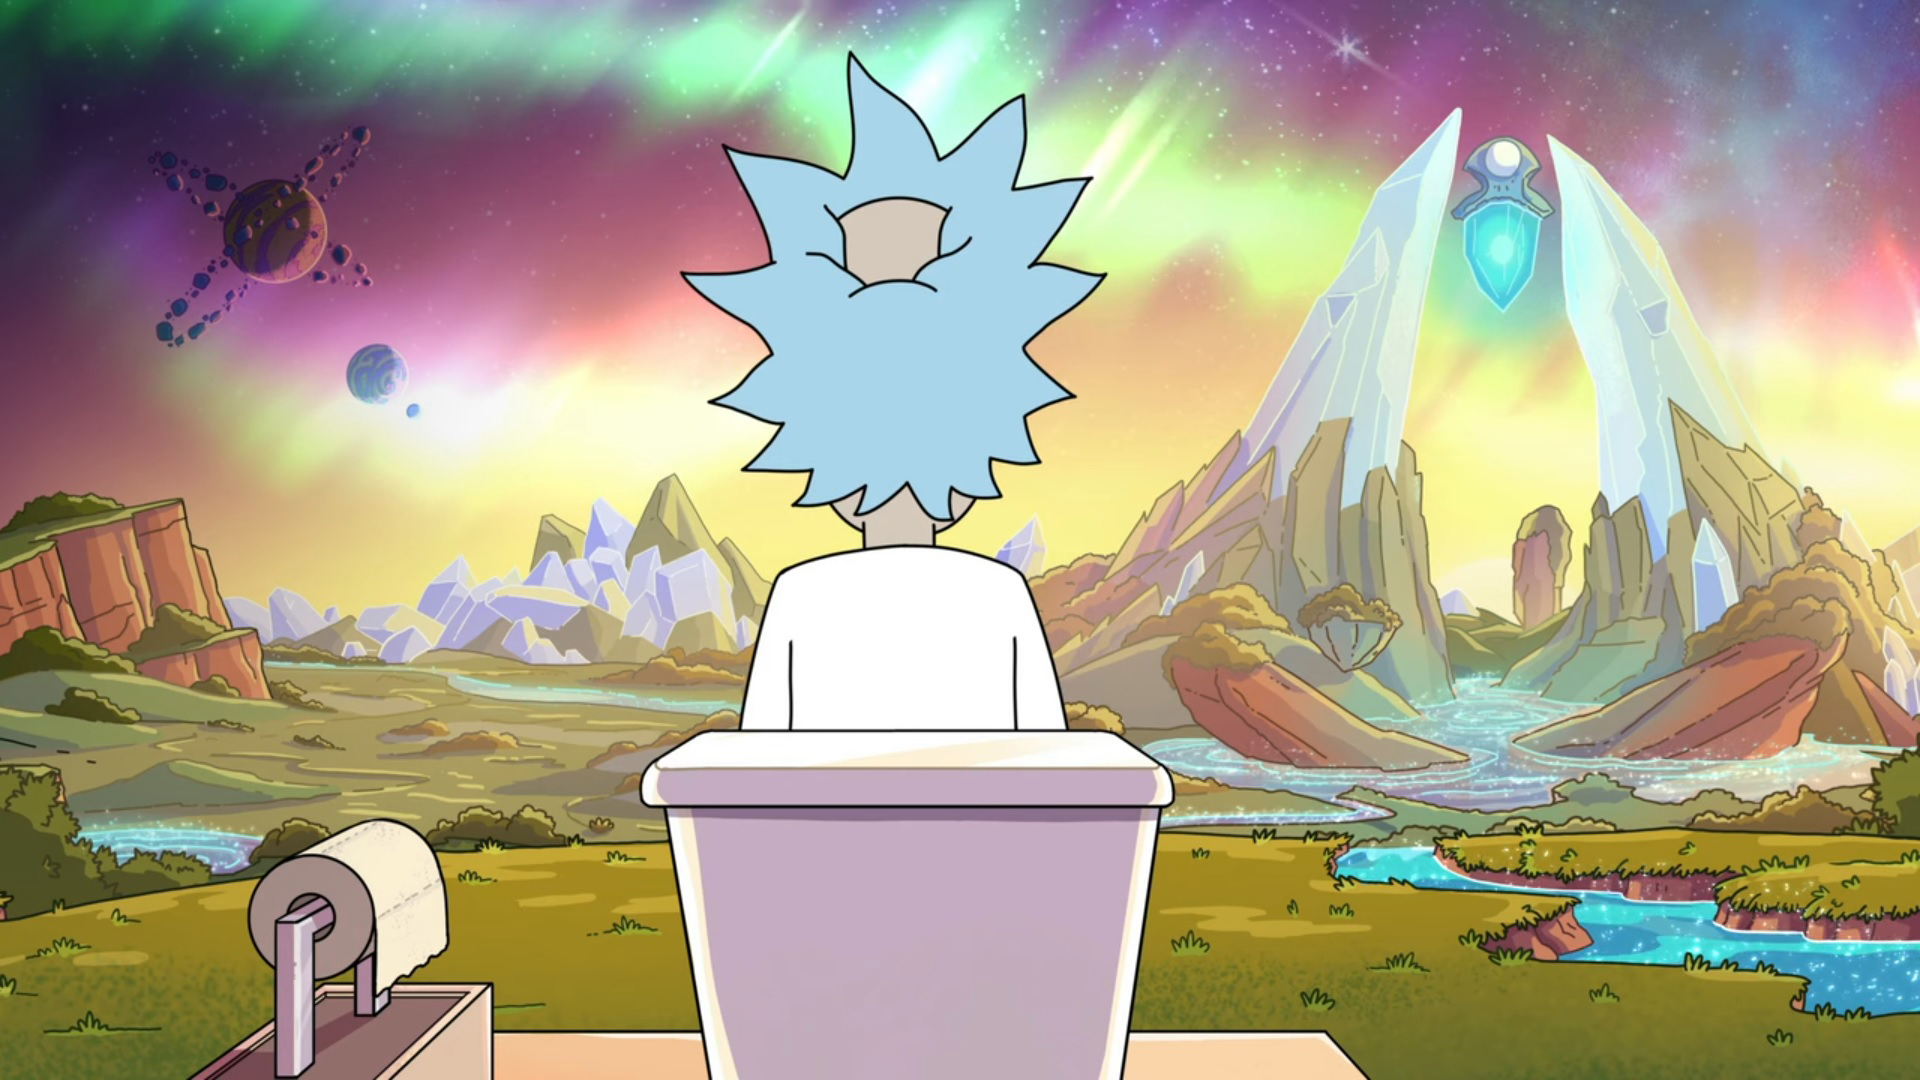 Rick-and-Morty-Laptop-Wallpapers-68.jpg